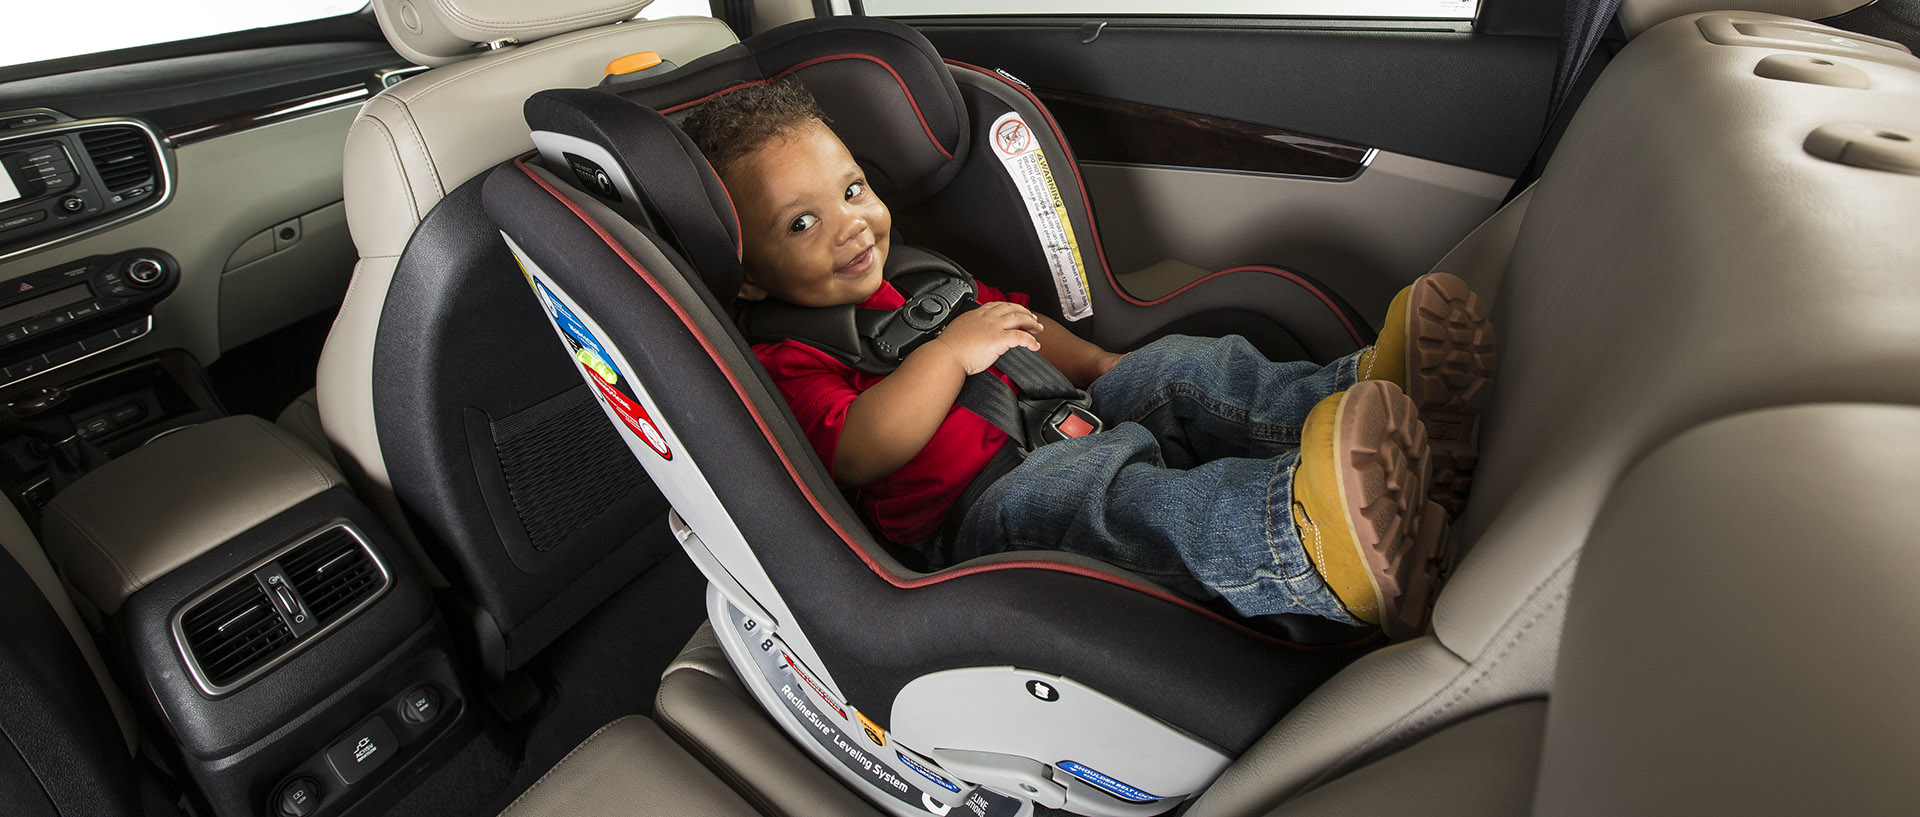 Car Seat Safety Fort Lauderdale Accident Attorney